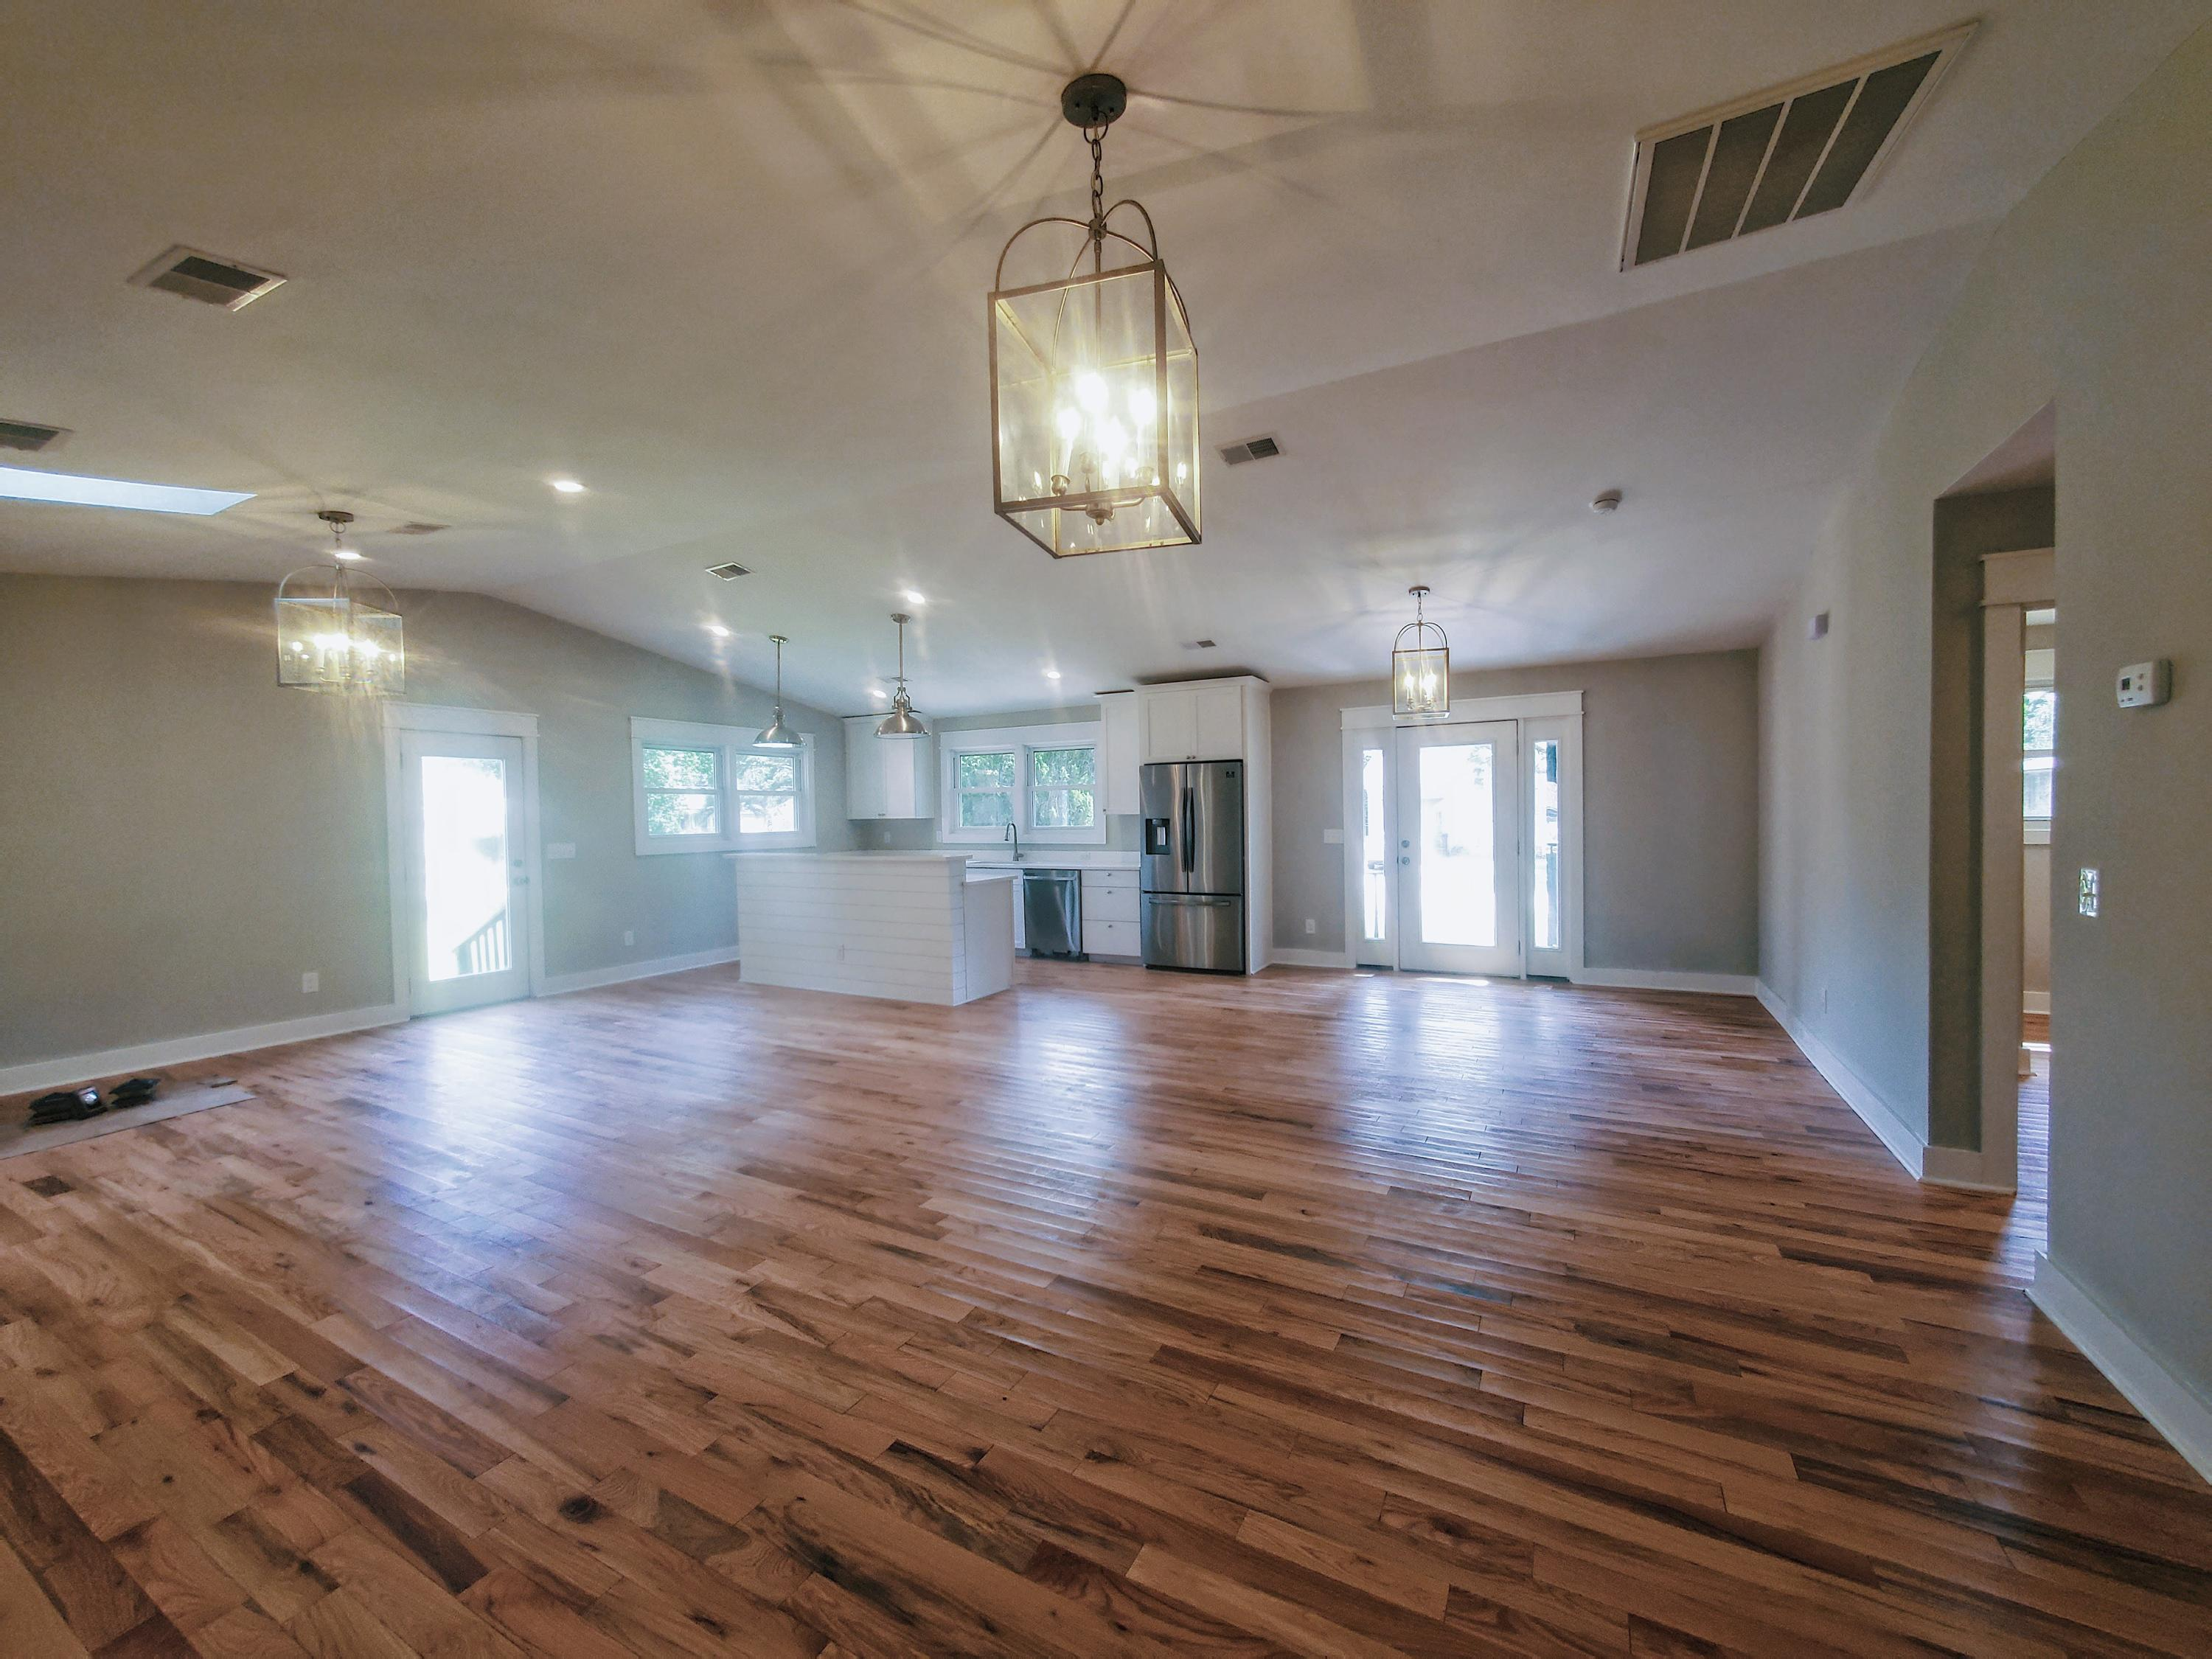 Glyn Terrace Homes For Sale - 5302 Mcroy, North Charleston, SC - 0